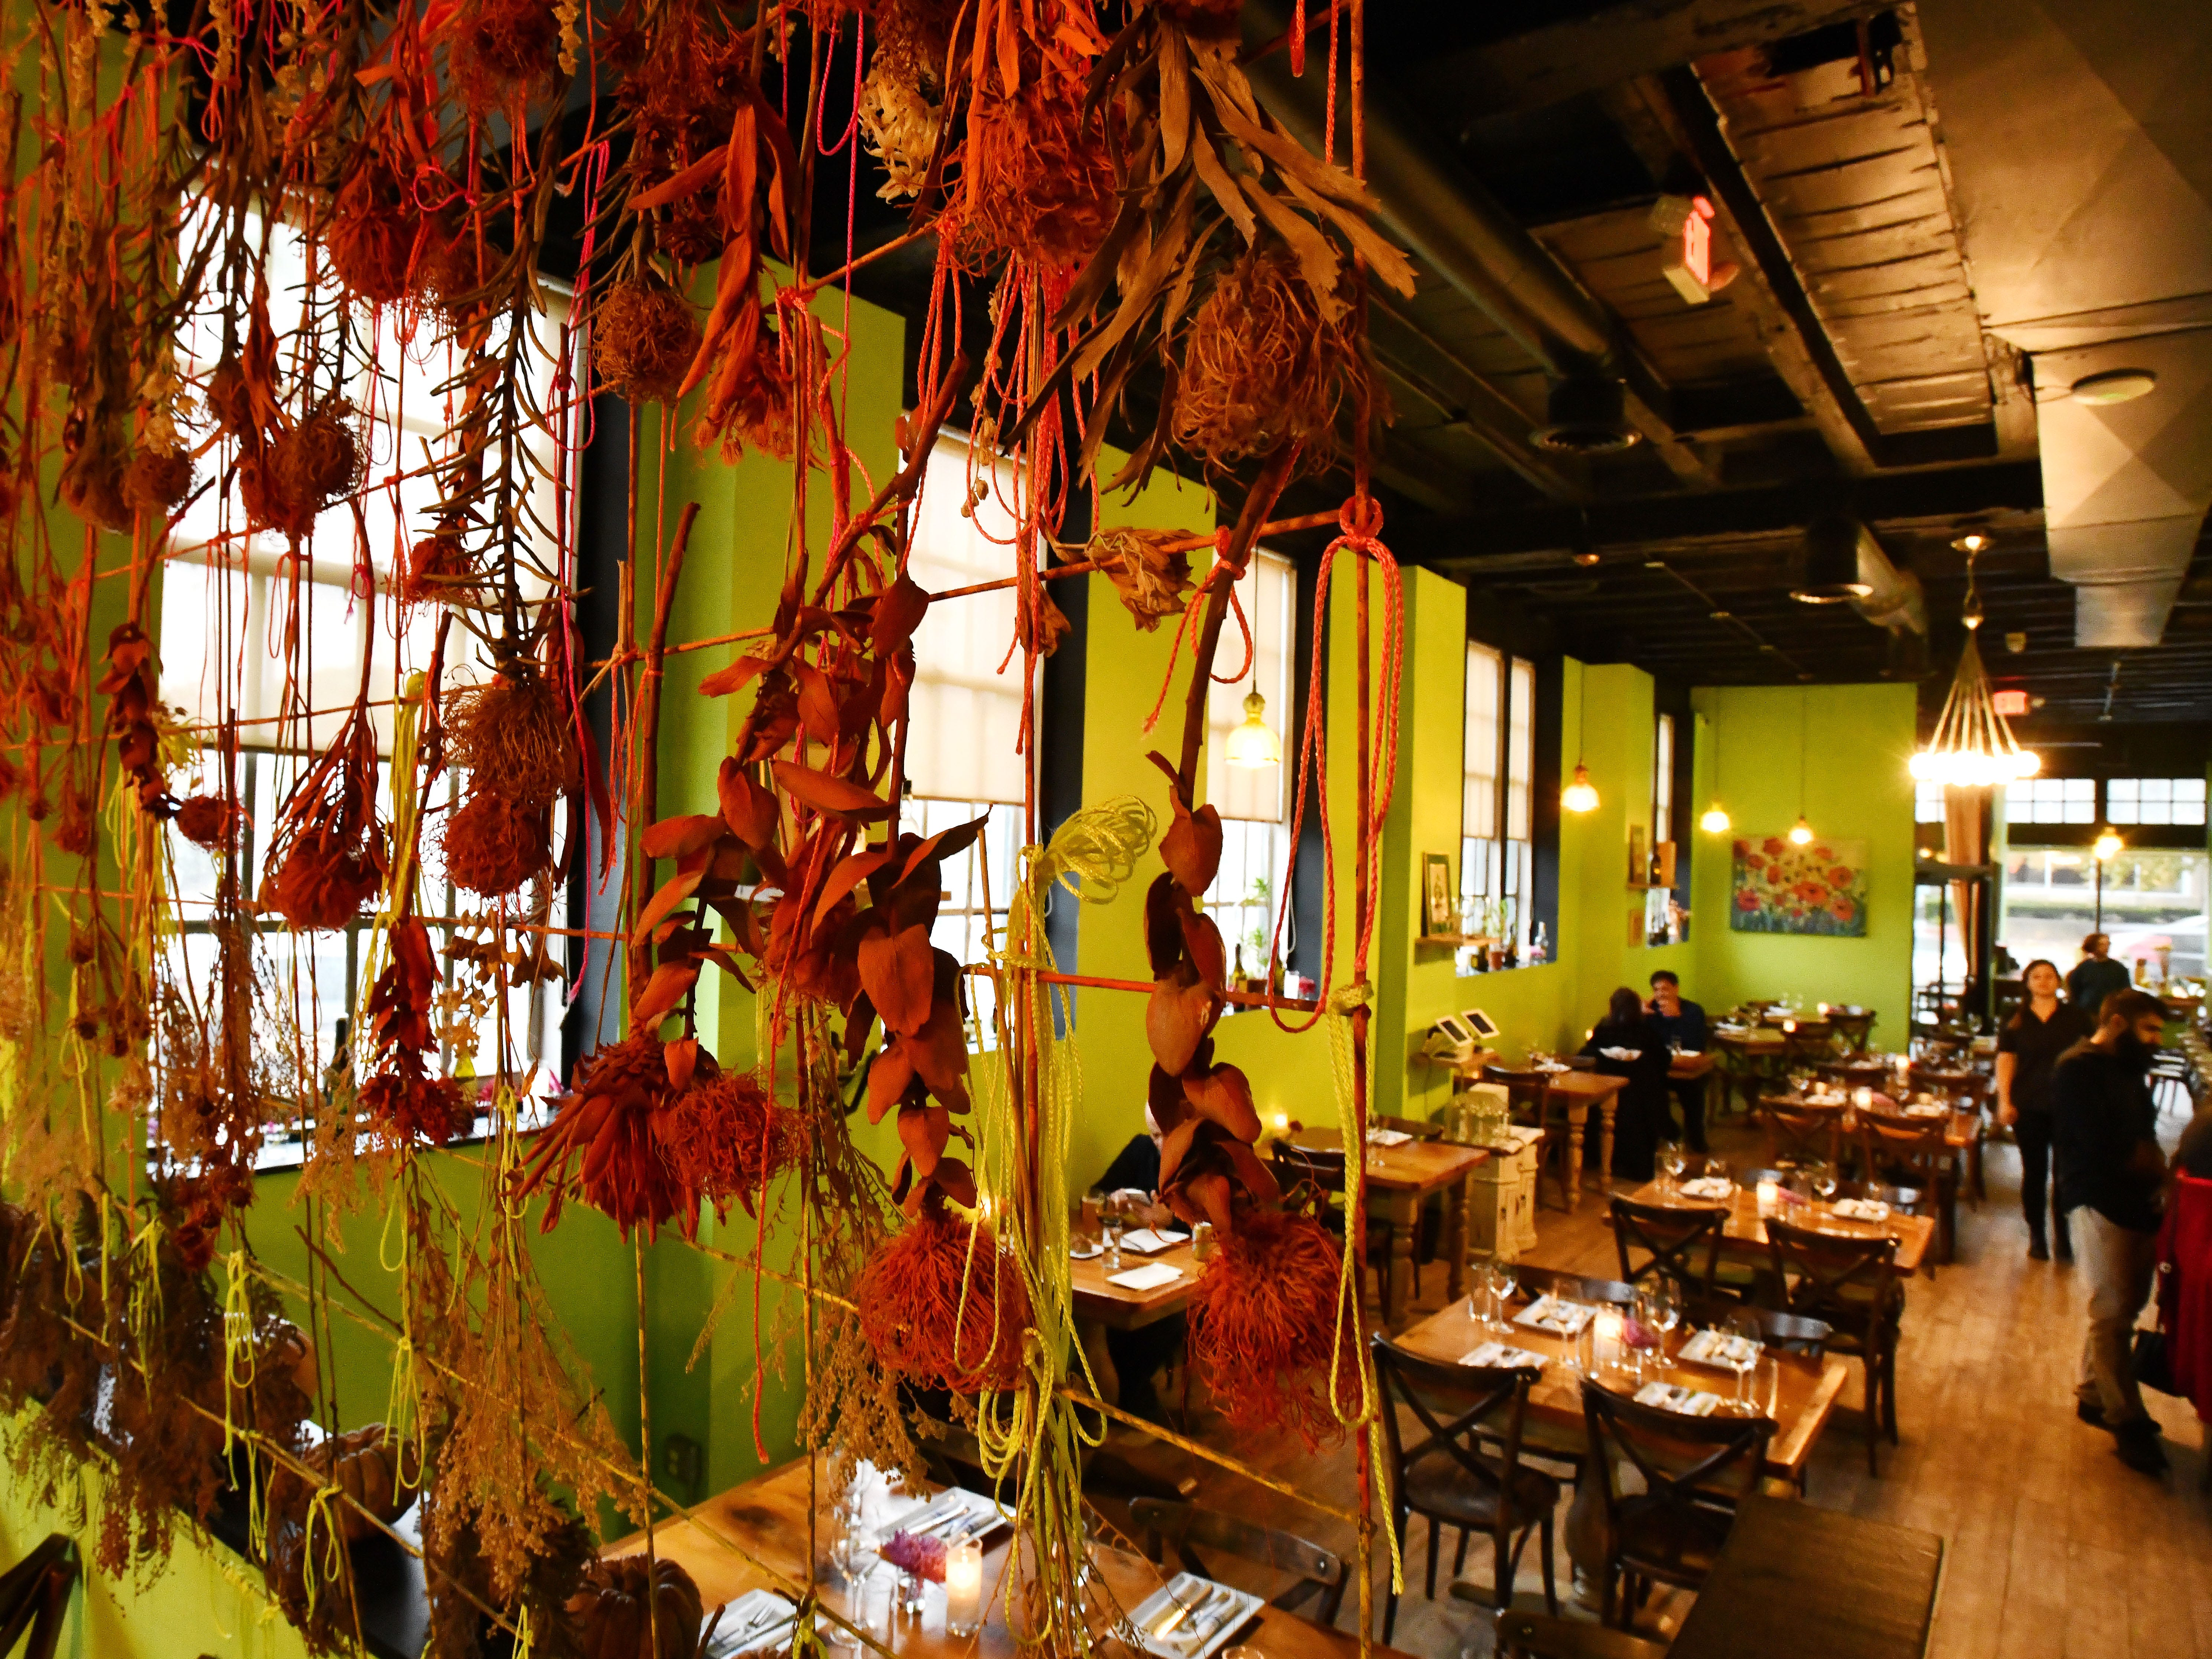 The colorful main dining area with room dividing art work.